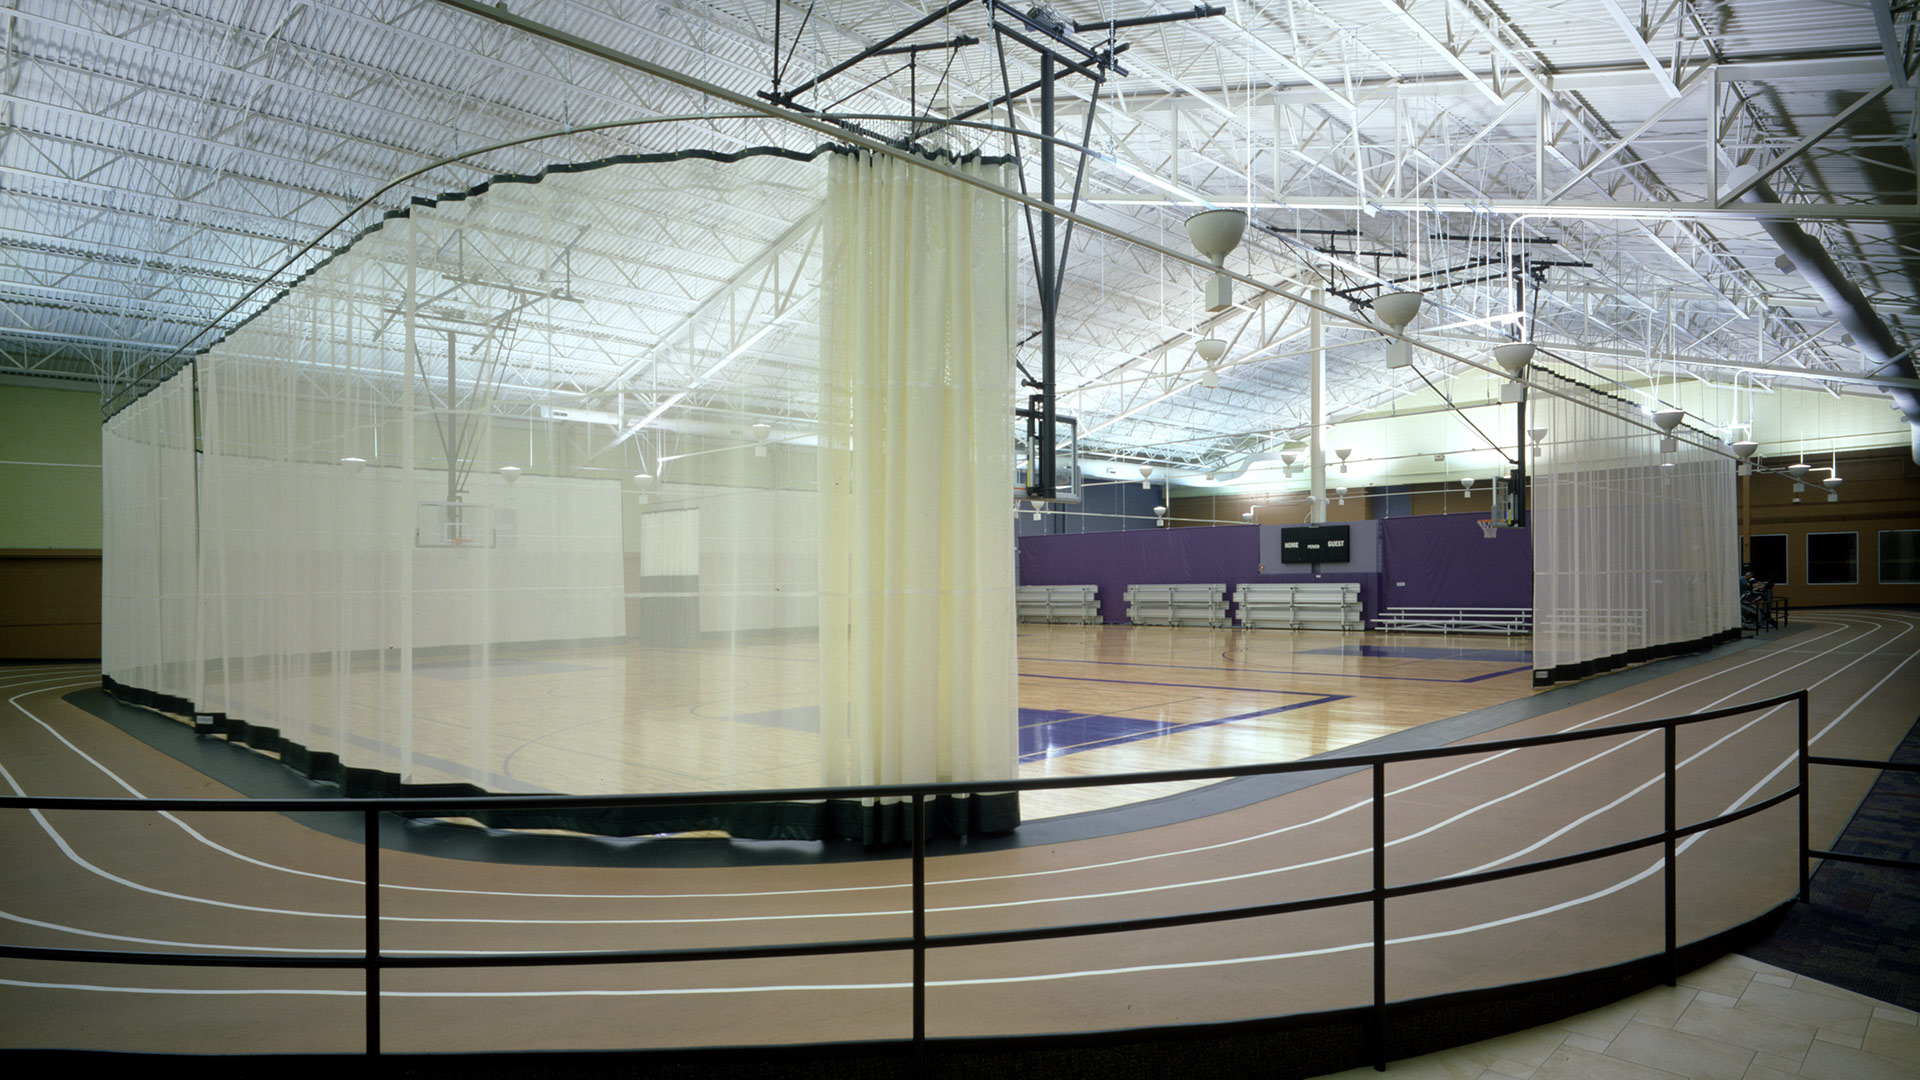 Deerfield Park District Sachs Recreation Center